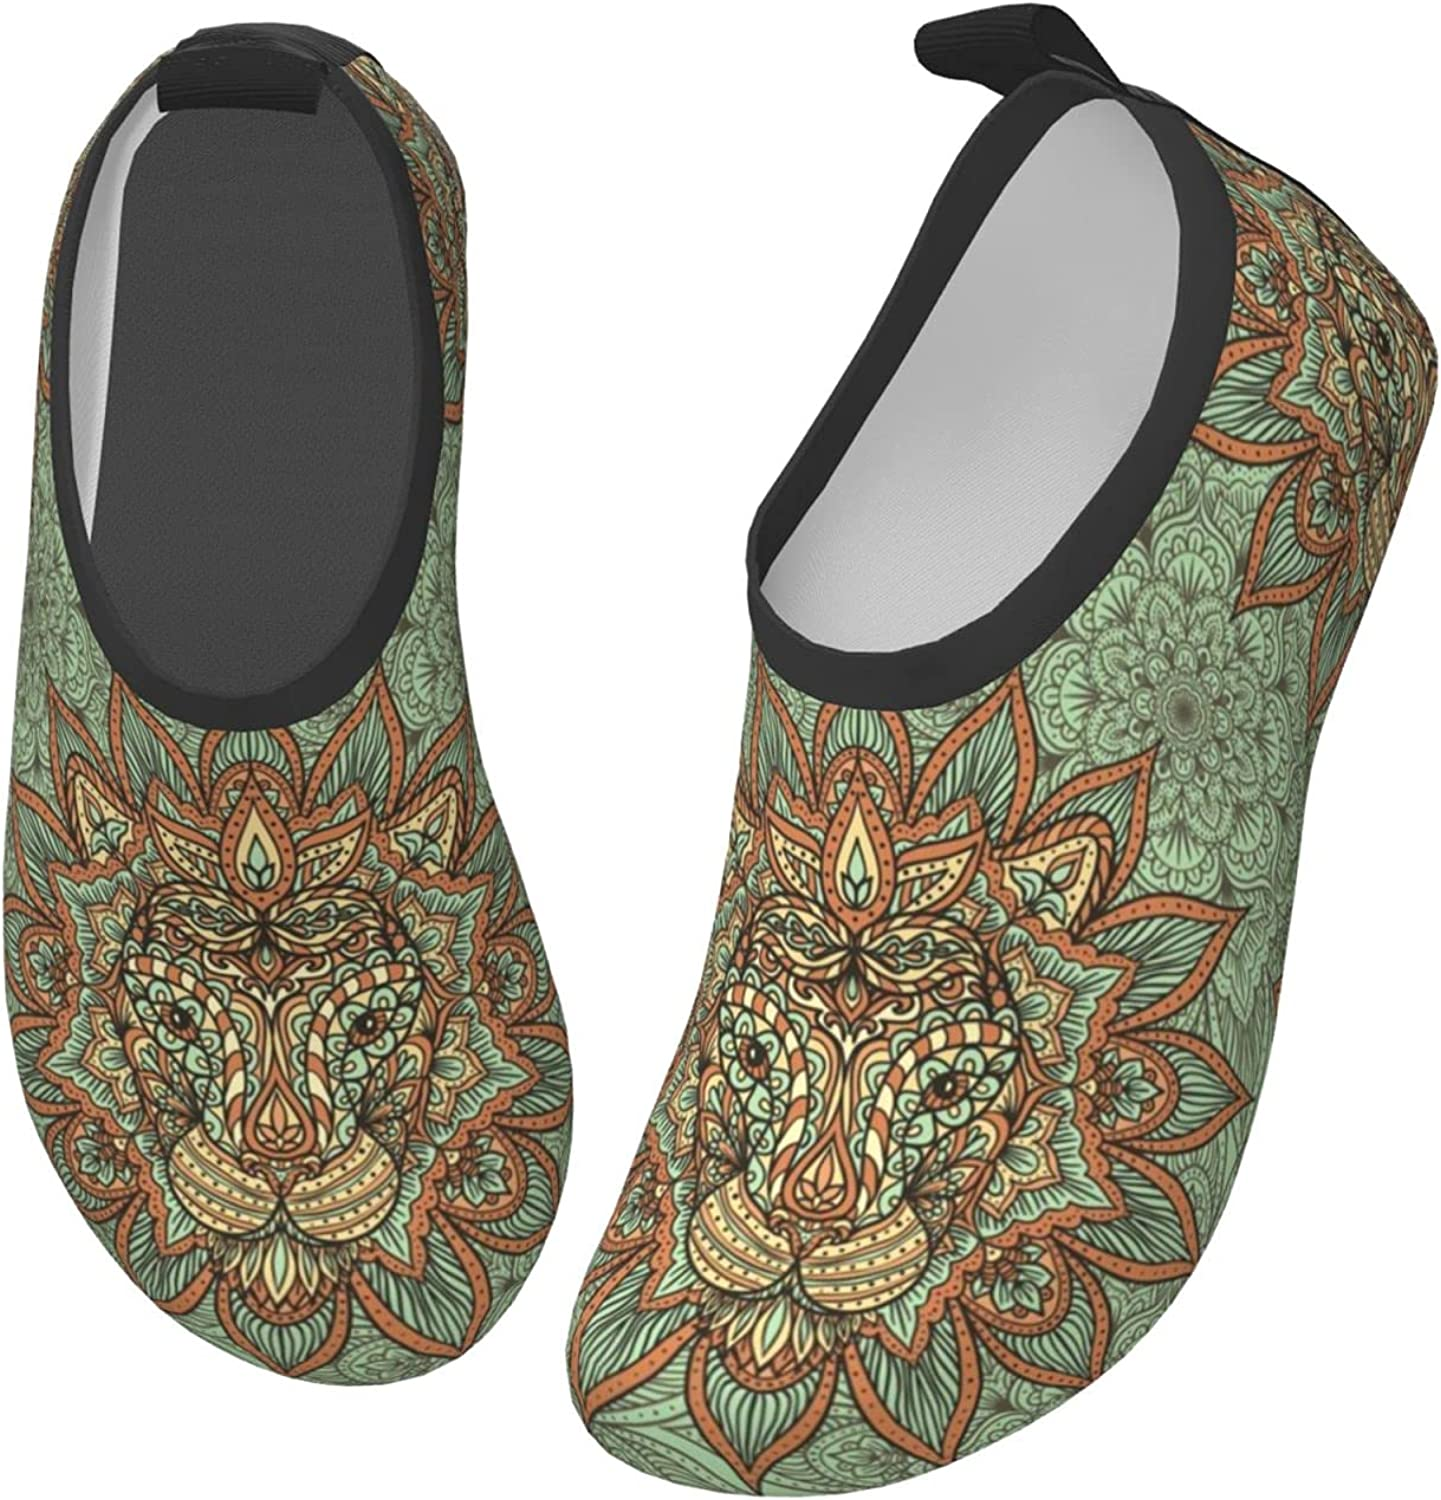 Fairy UMI Lion Pattern Toddler Water Shoes Non-Slip Aqua Sports Shoes Barefoot Swim Shoes Beach Surf for Boys Girls